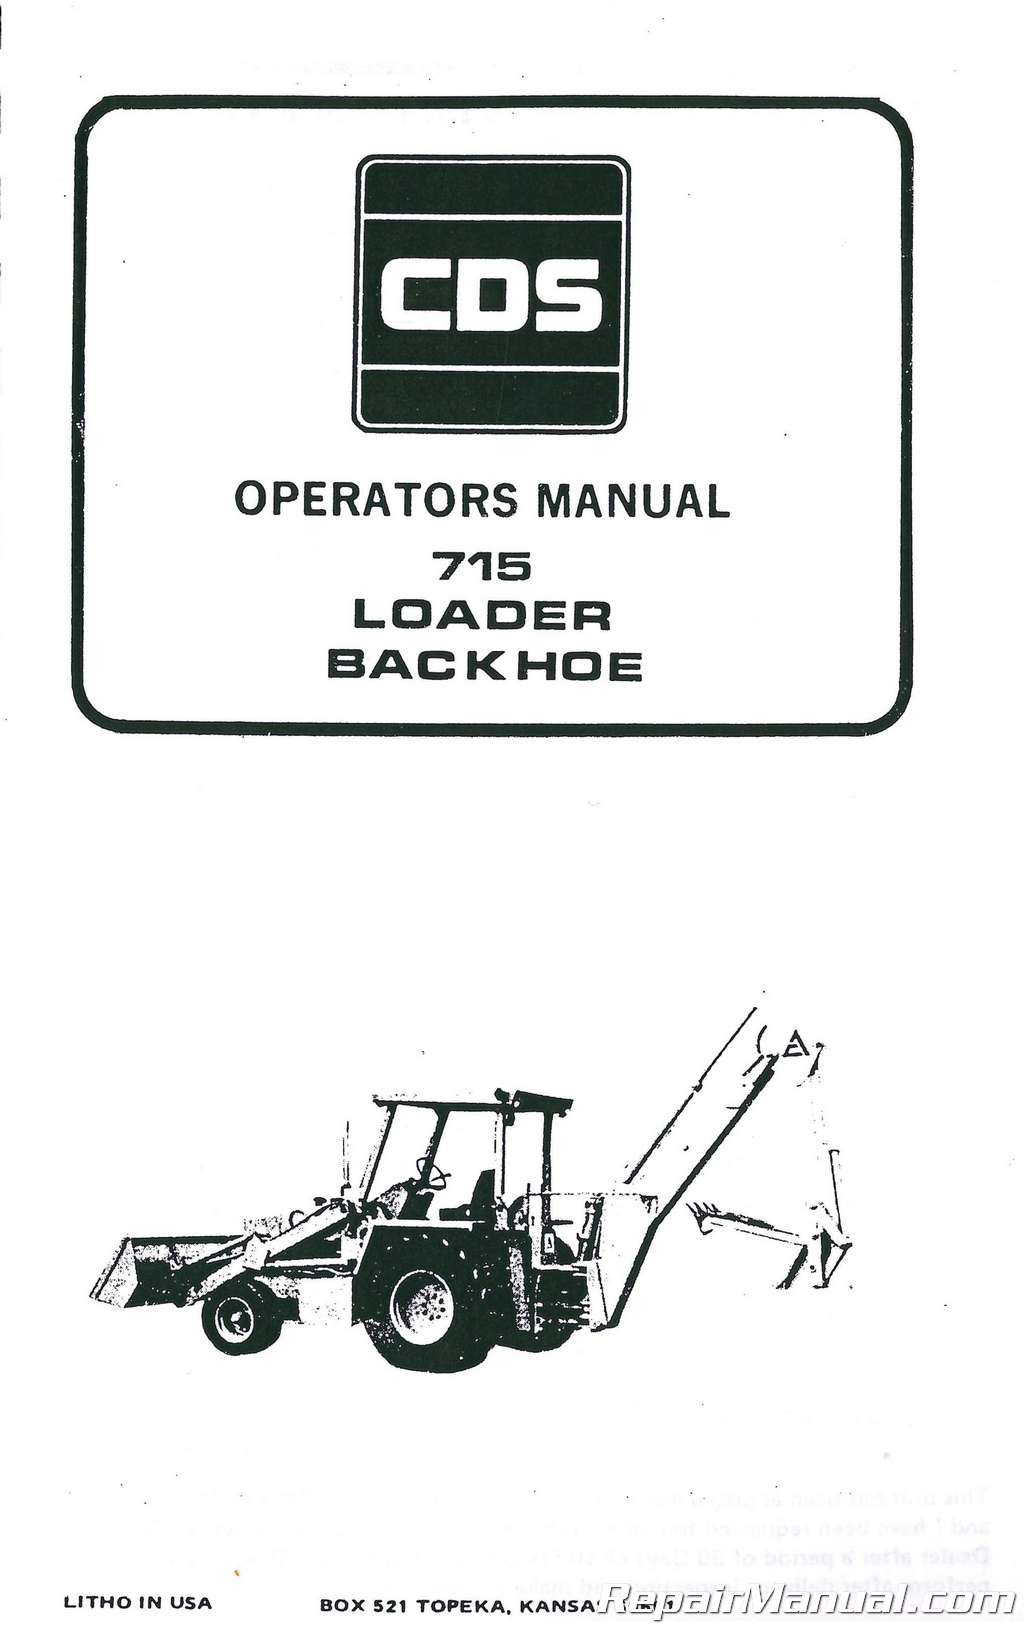 Allis Chalmers 715 Tractor Loader Backhoe Operators Manual